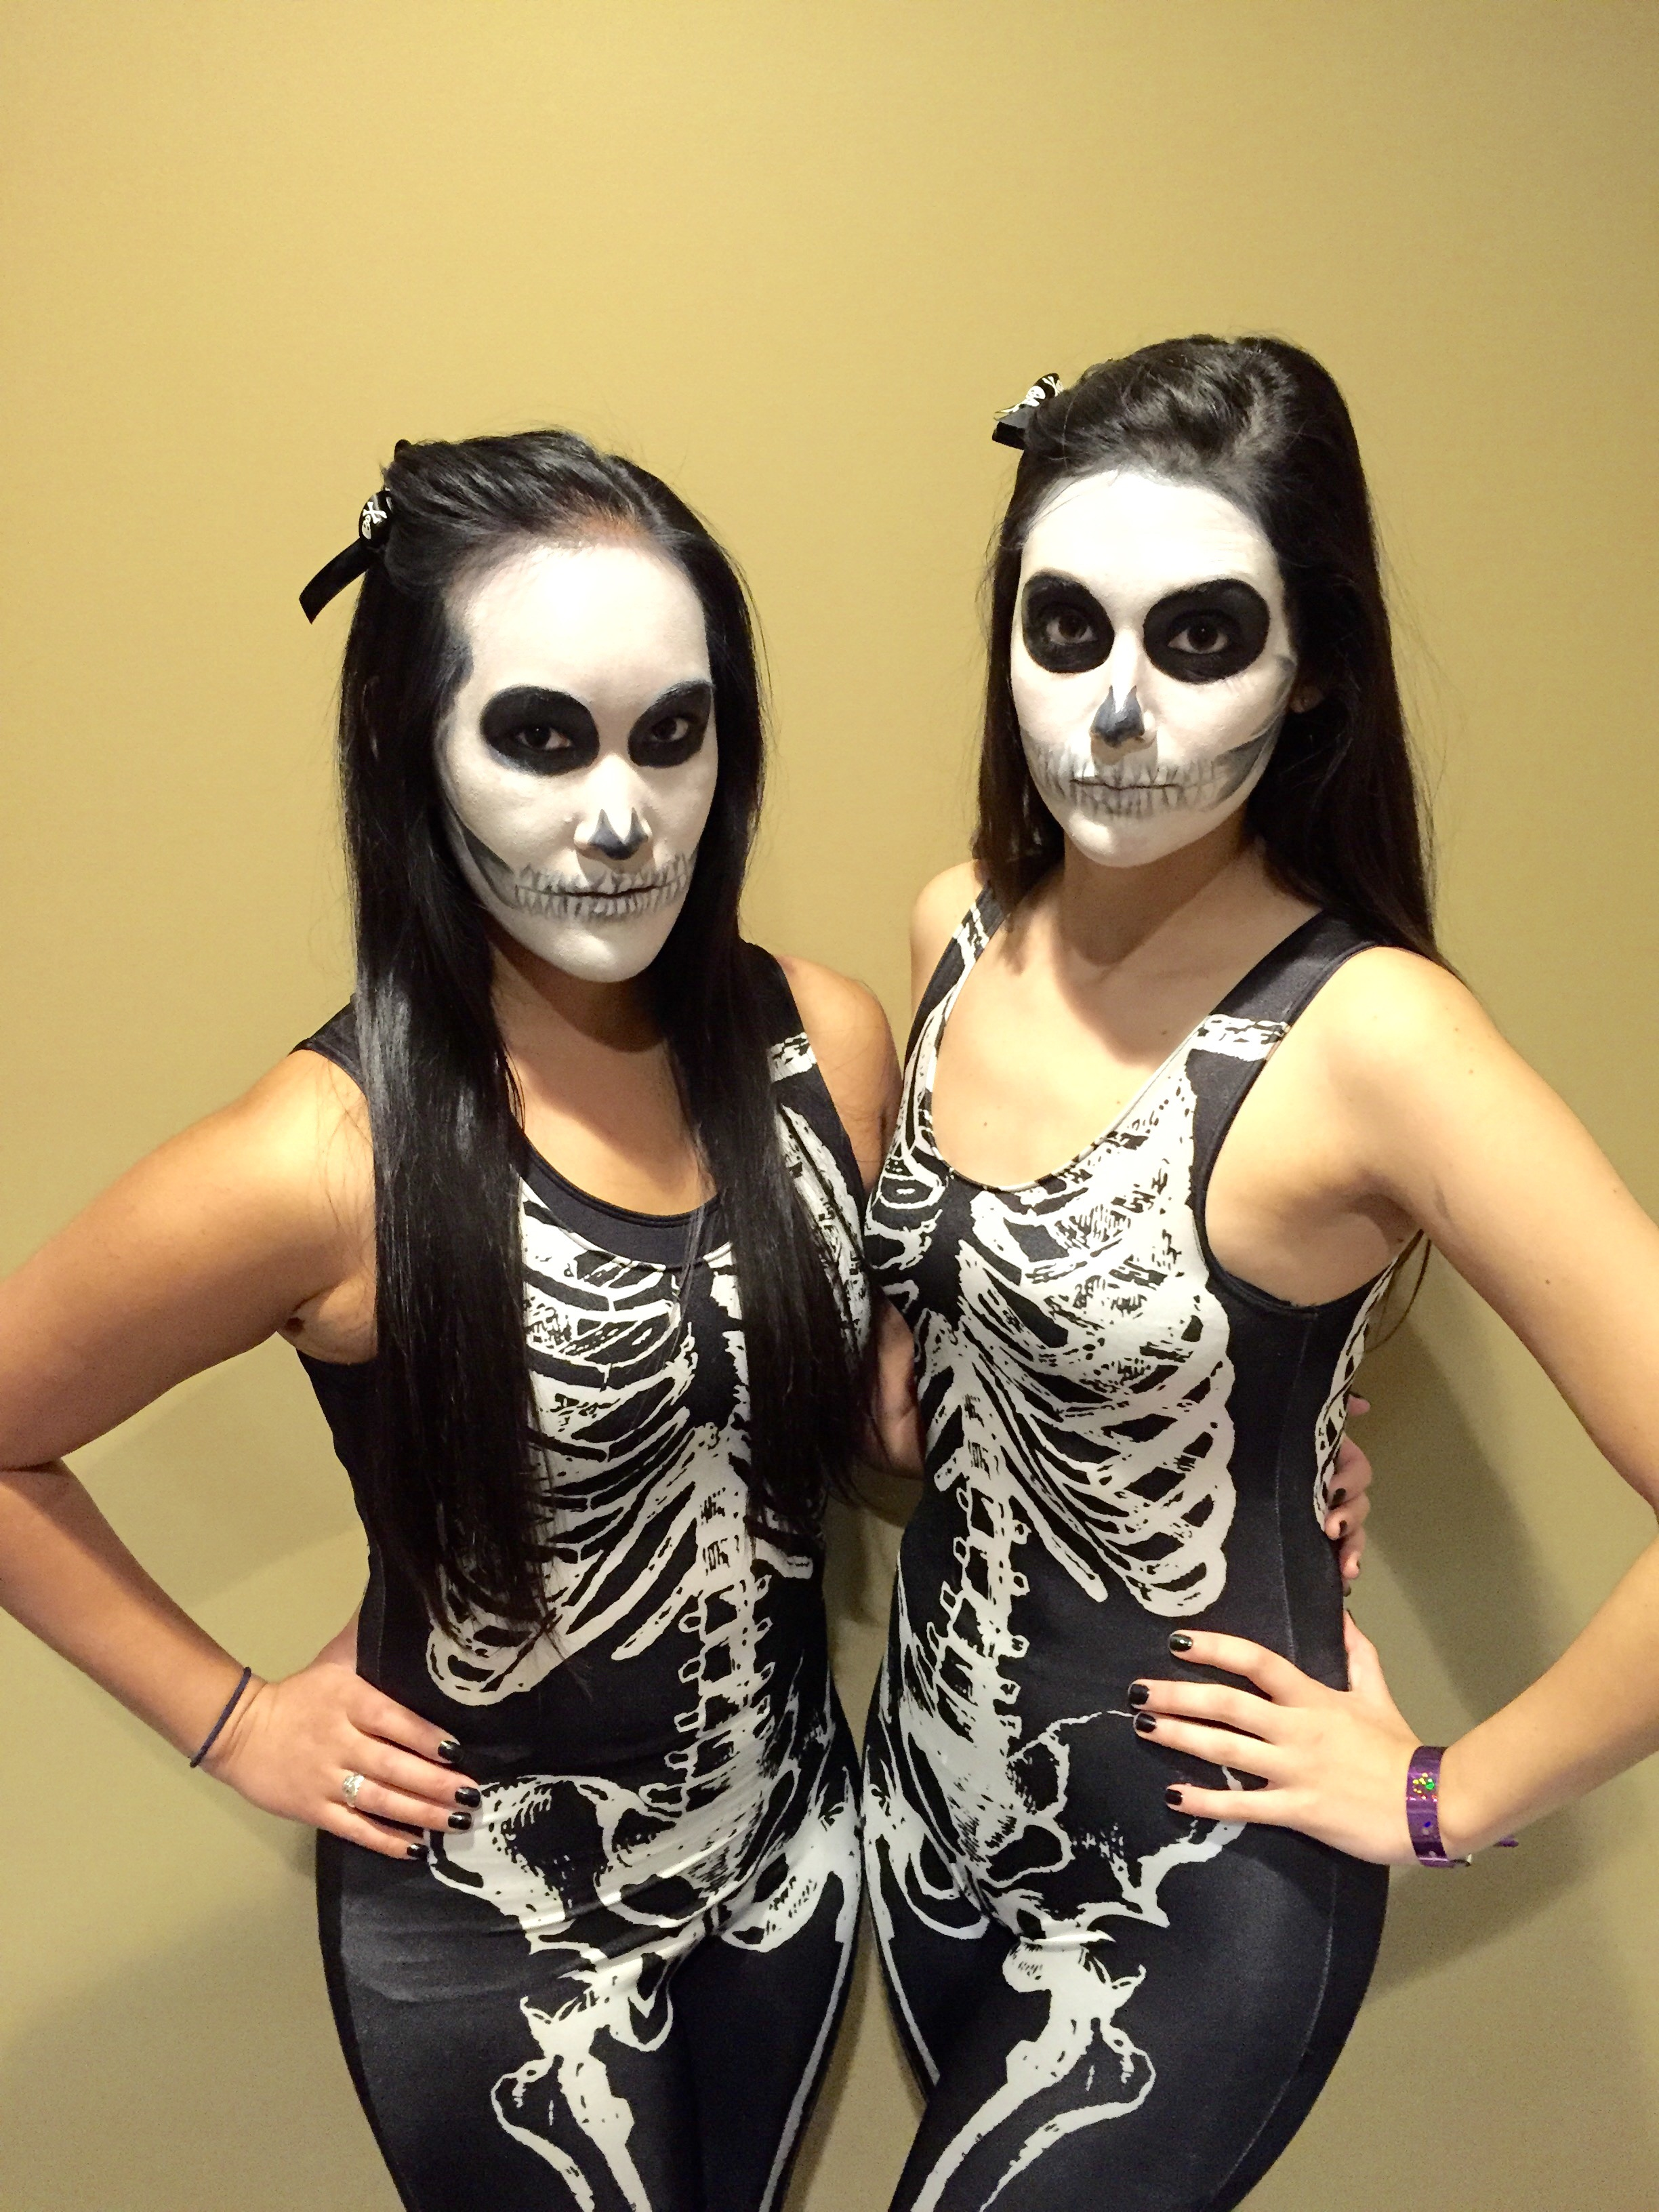 Halloween Hair and Makeup - Skeletons